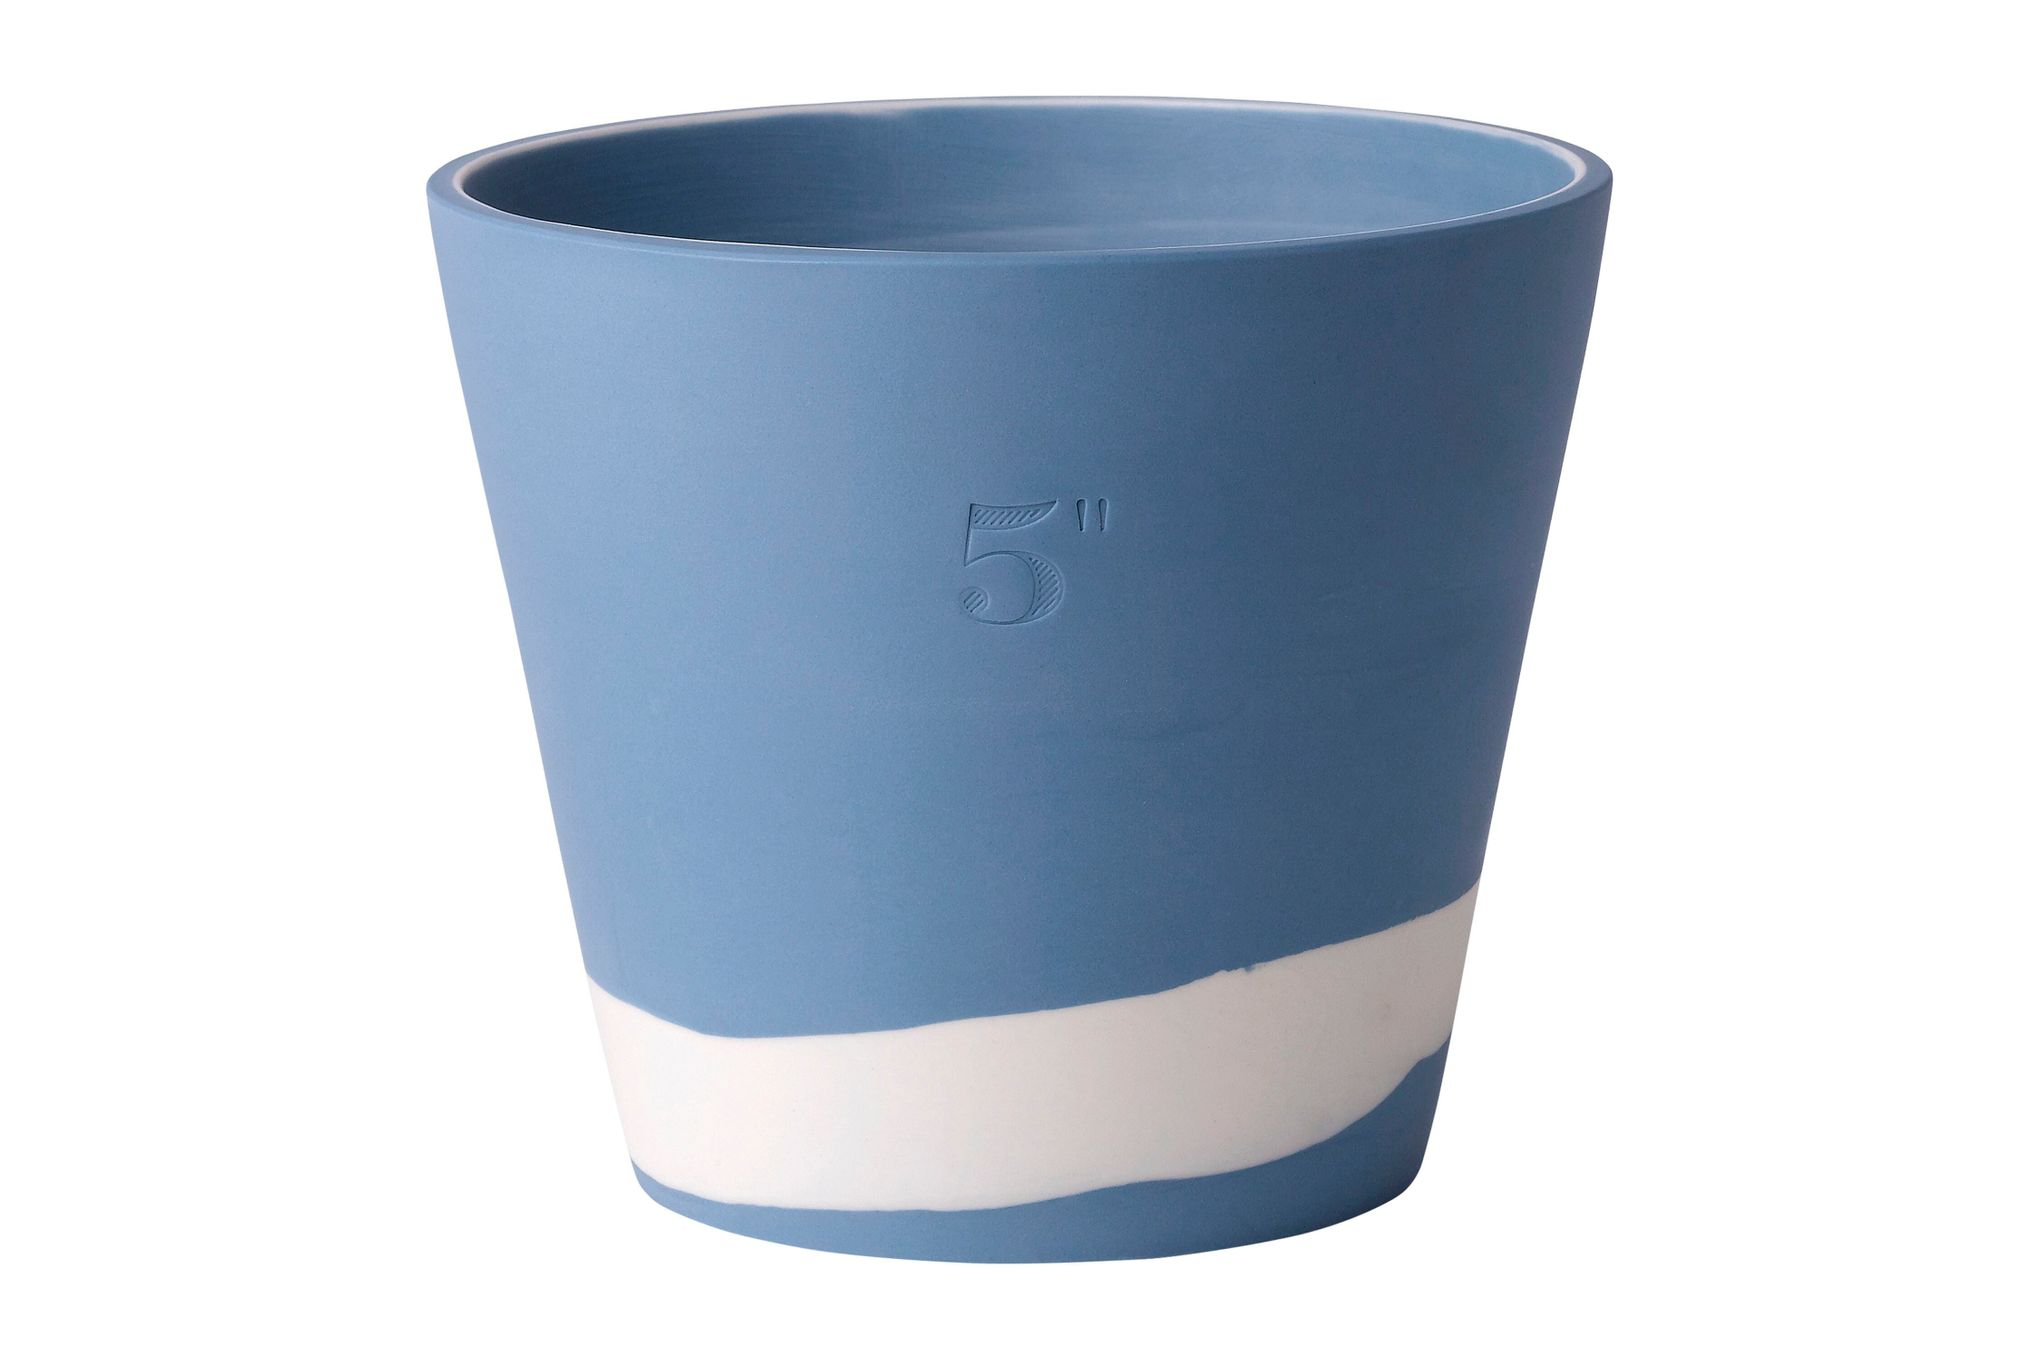 "Wedgwood Burlington Pots Planter Blue 5"" thumb 1"